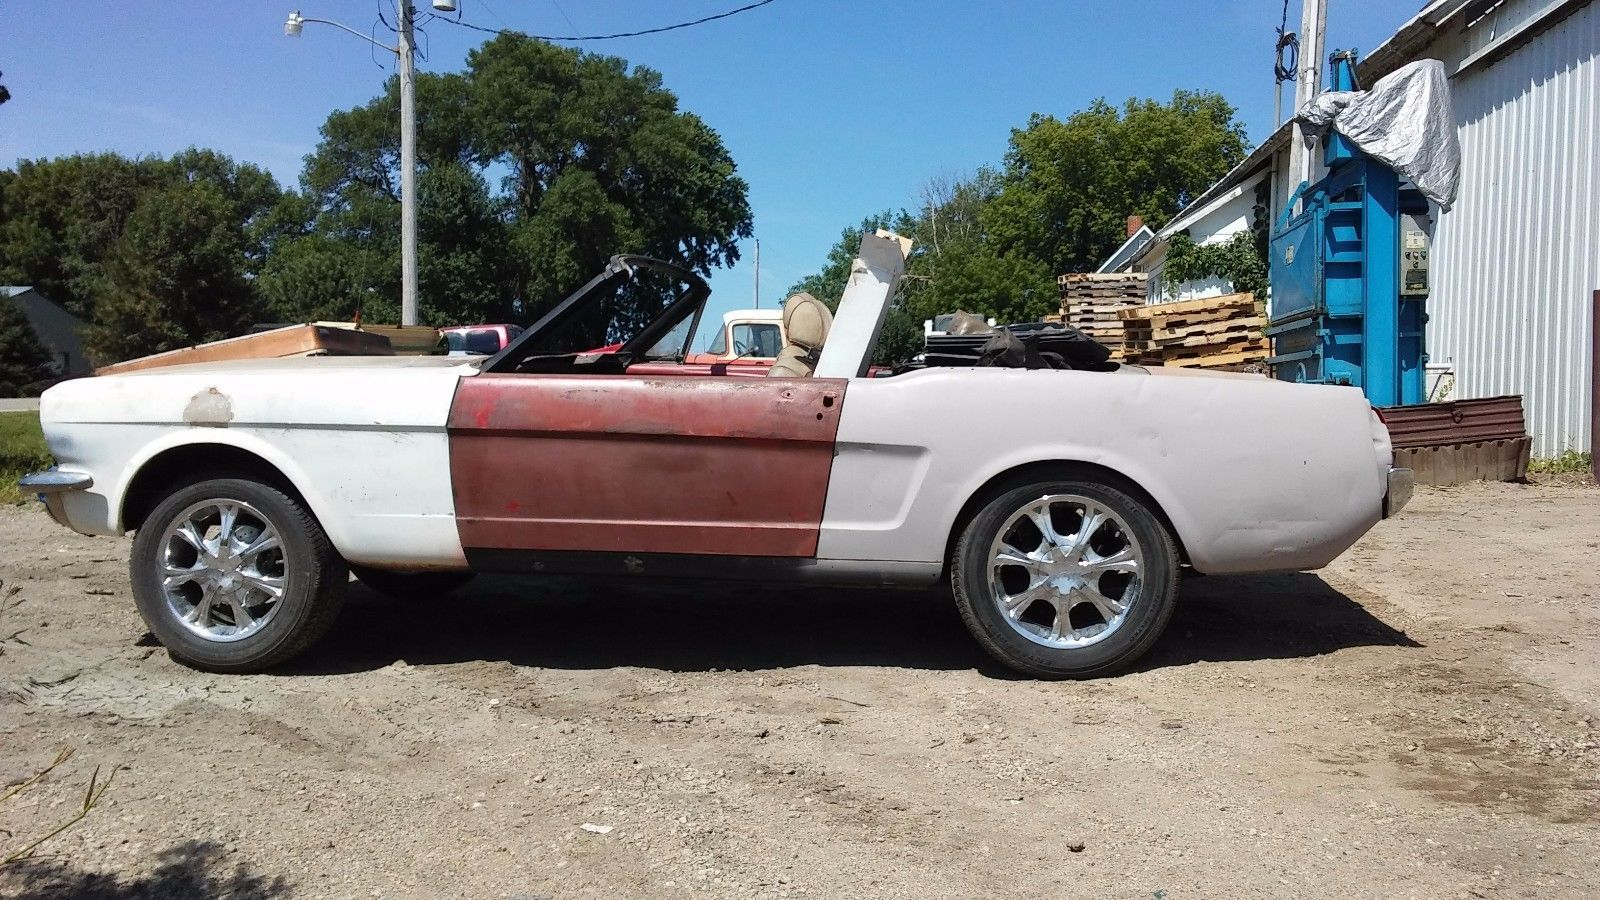 Common rust 1965 ford mustang convertible poject project cars for sale pinterest ford mustang convertible mustang convertible and ford mustang